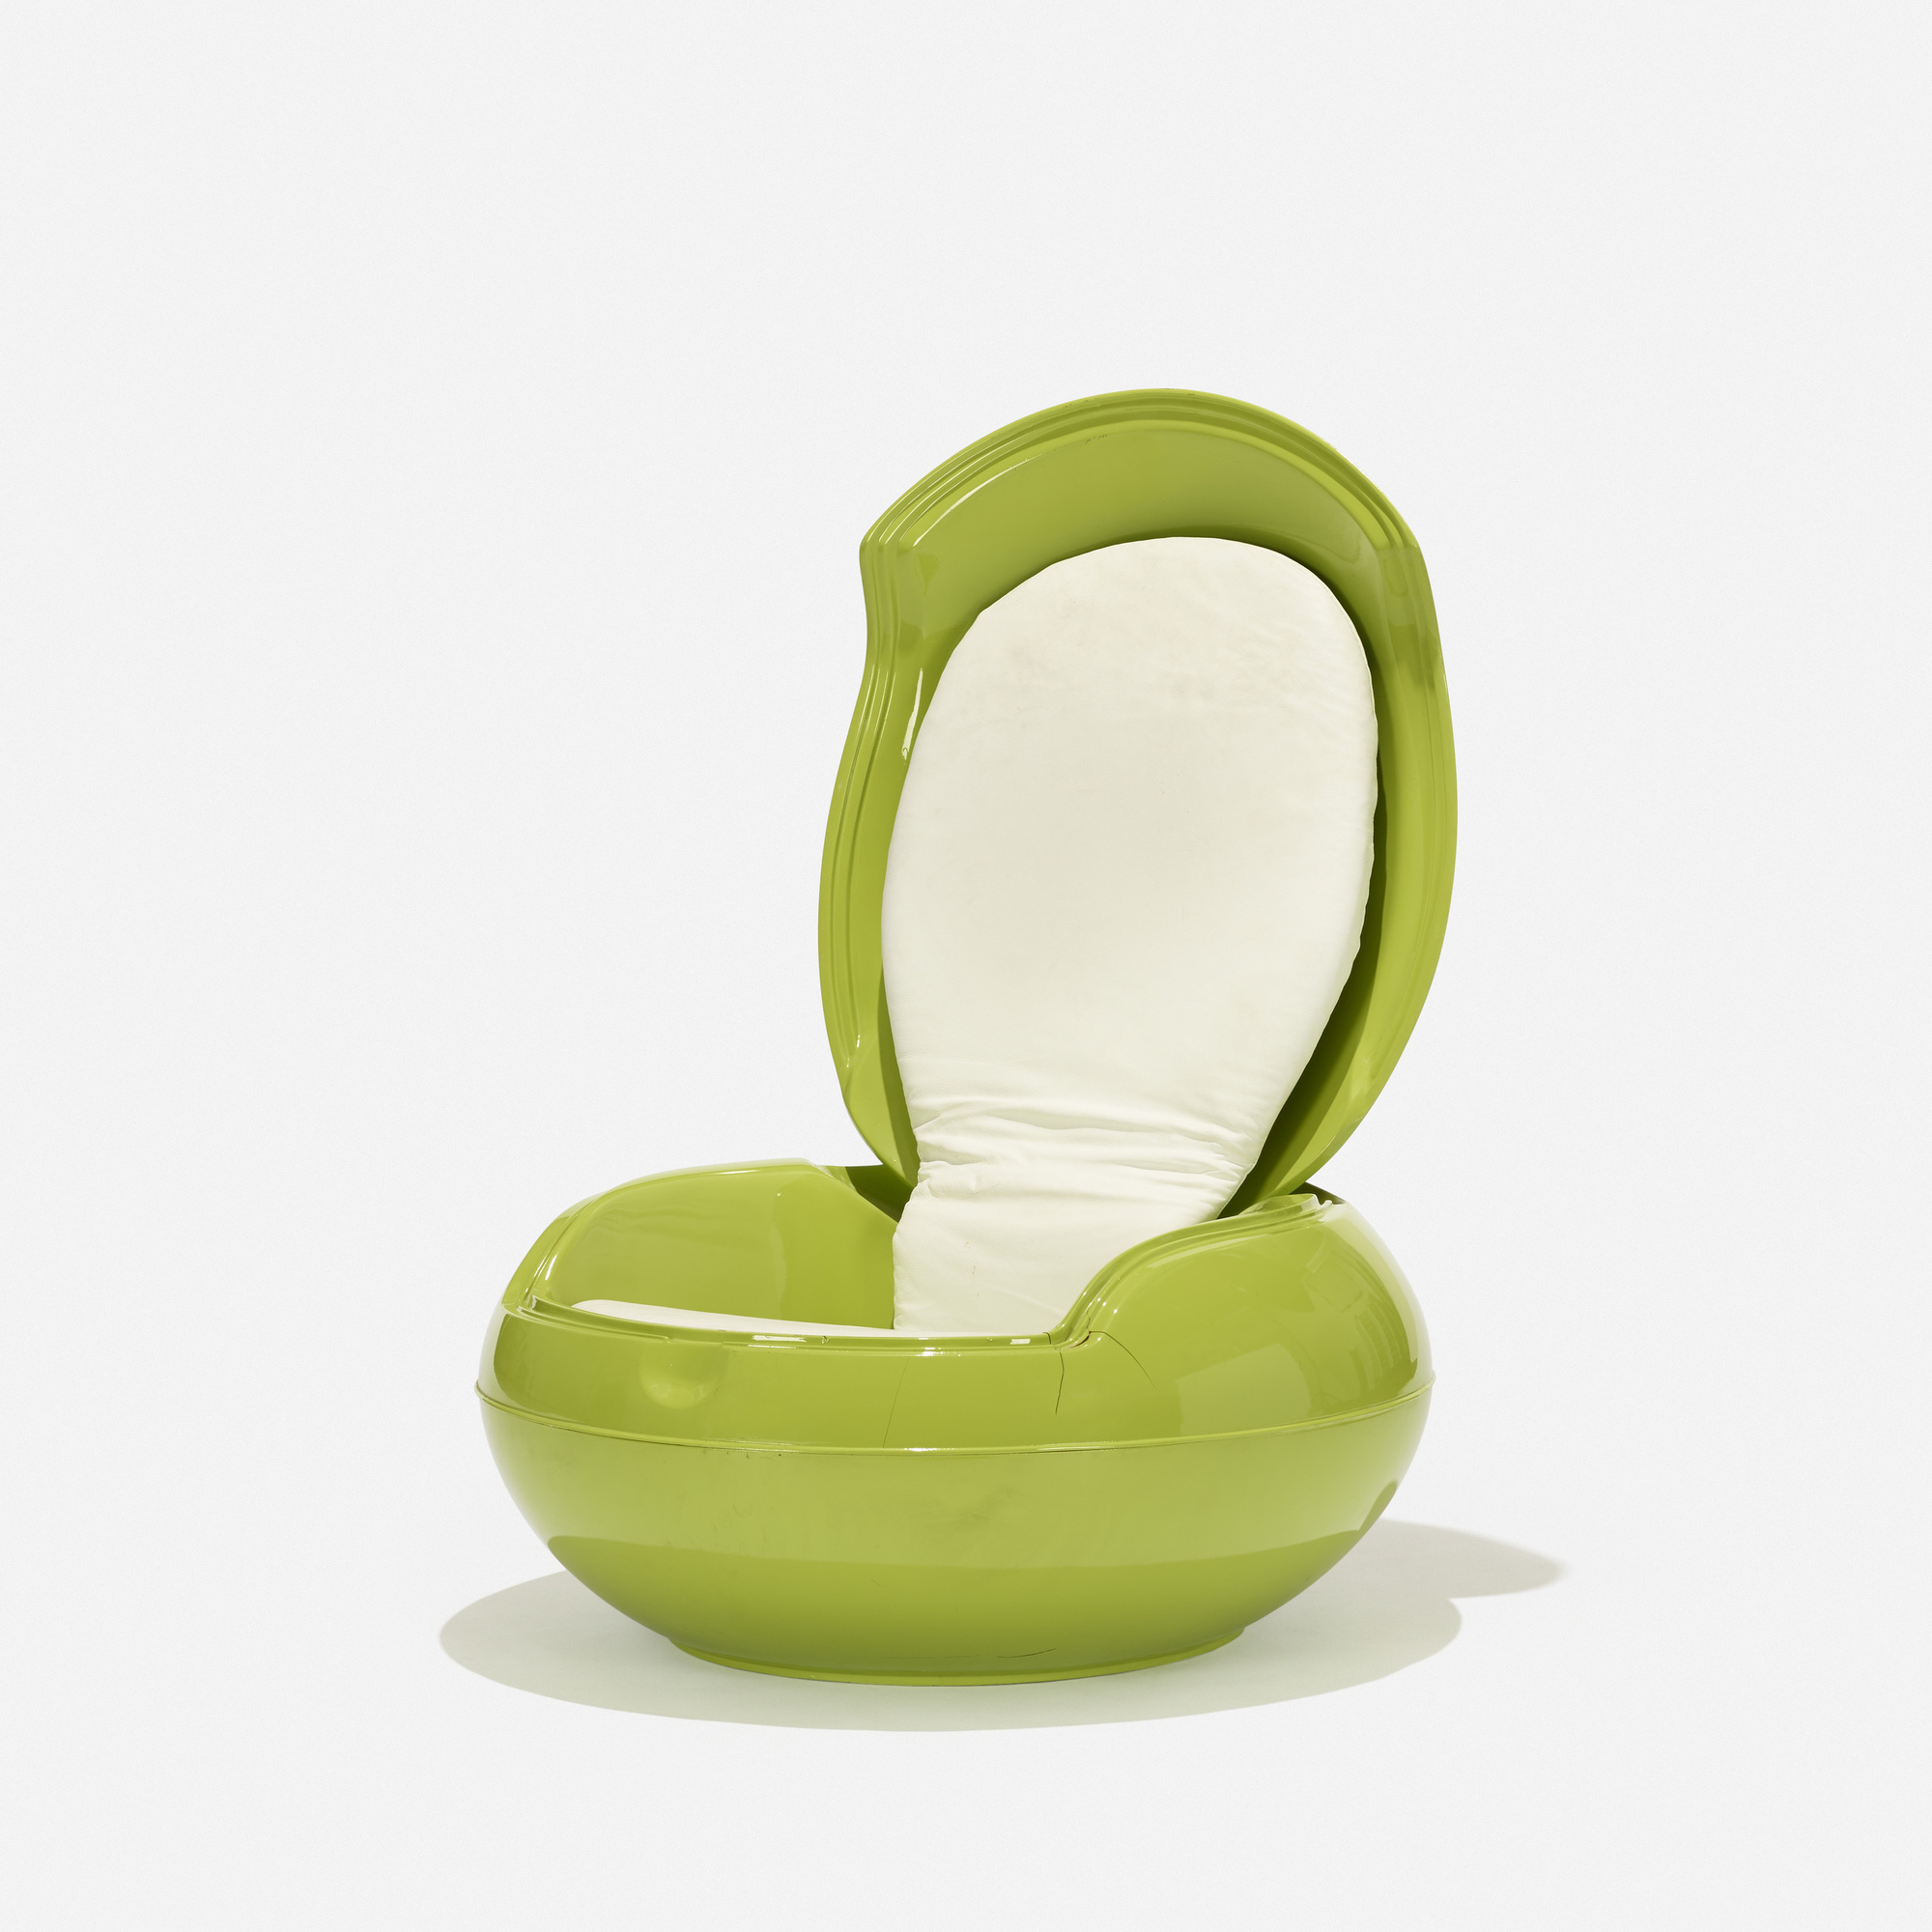 100: Peter Ghyczy / Garden Egg chair (1 of 3)